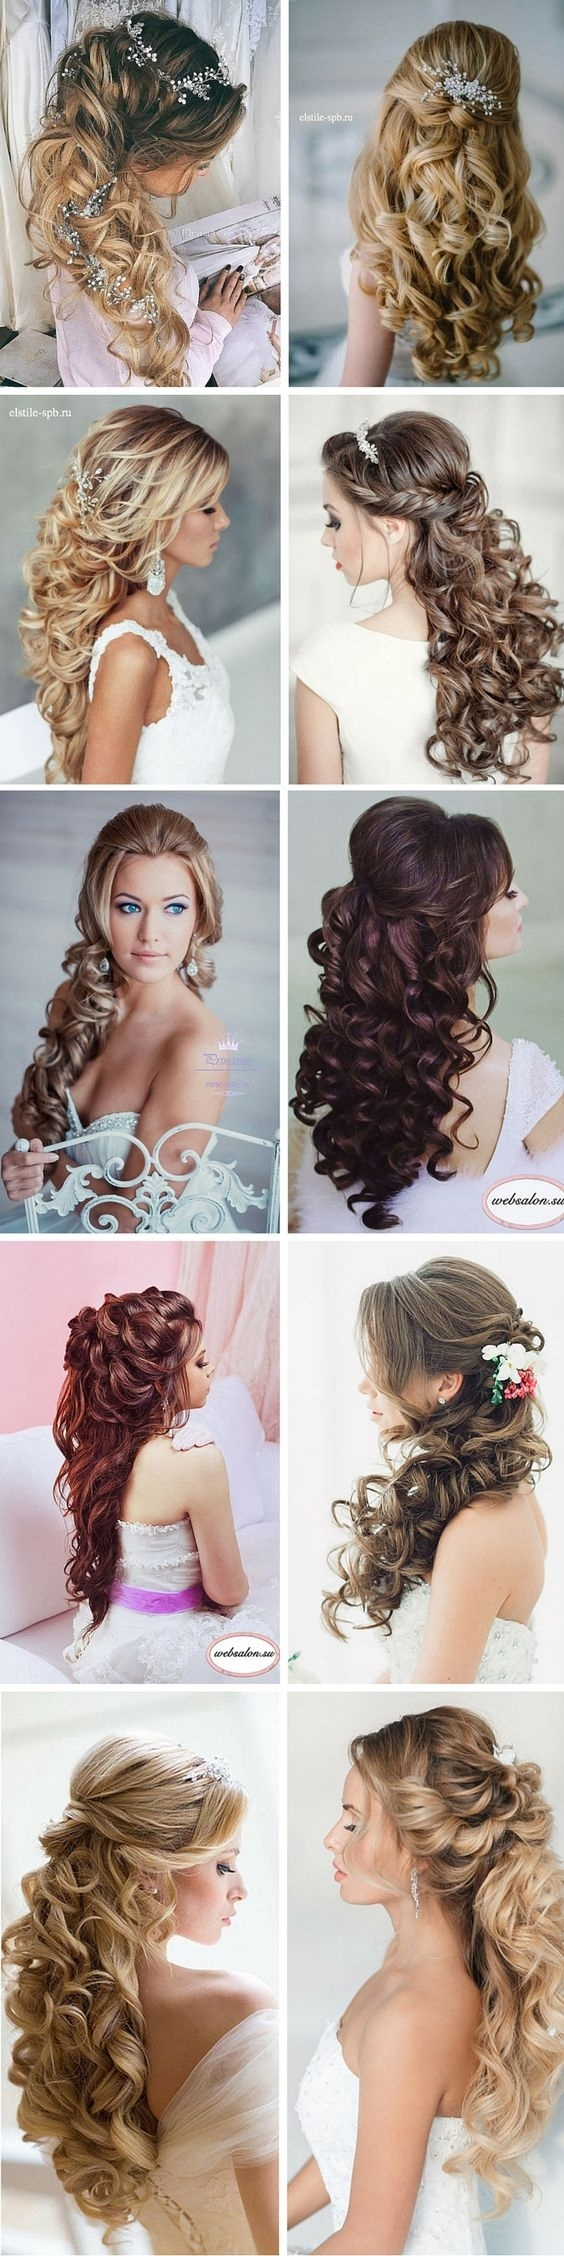 100+ Romantic Long Wedding Hairstyles 2018 – Curls, Half Up, Updos Inside Most Up To Date Wedding Hairstyles For Long Down Curls Hair (View 2 of 15)